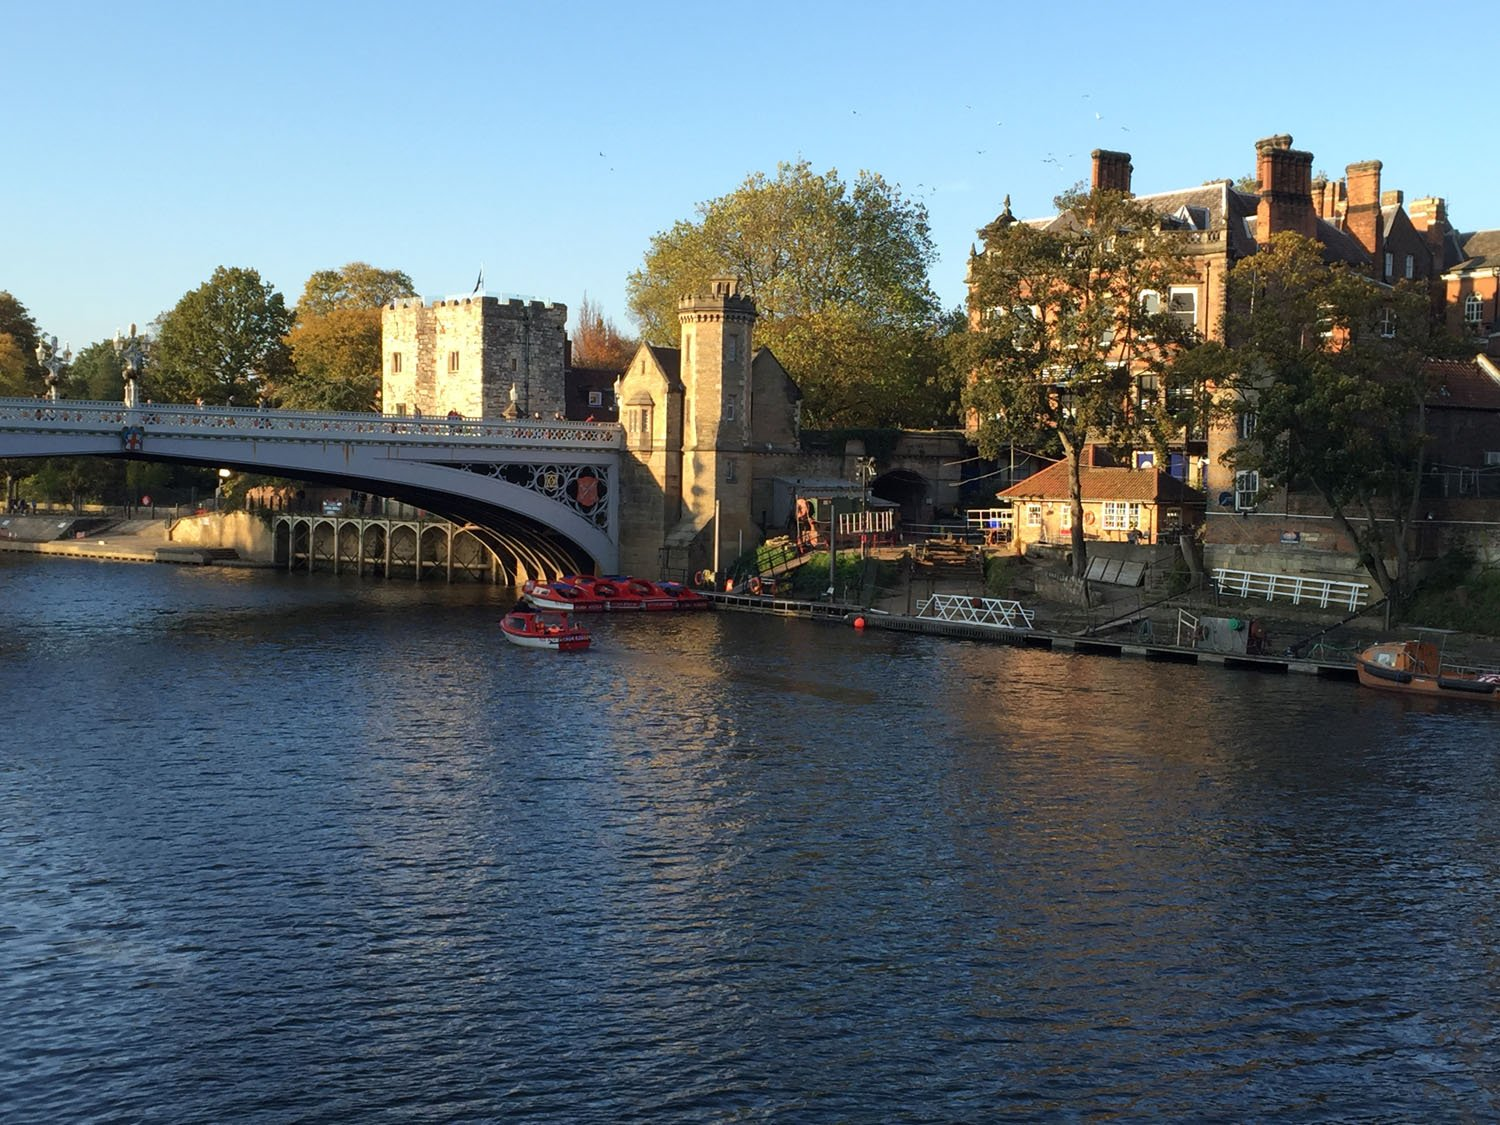 Autumn Colours - Lendal Bridge over the River Ouse - York